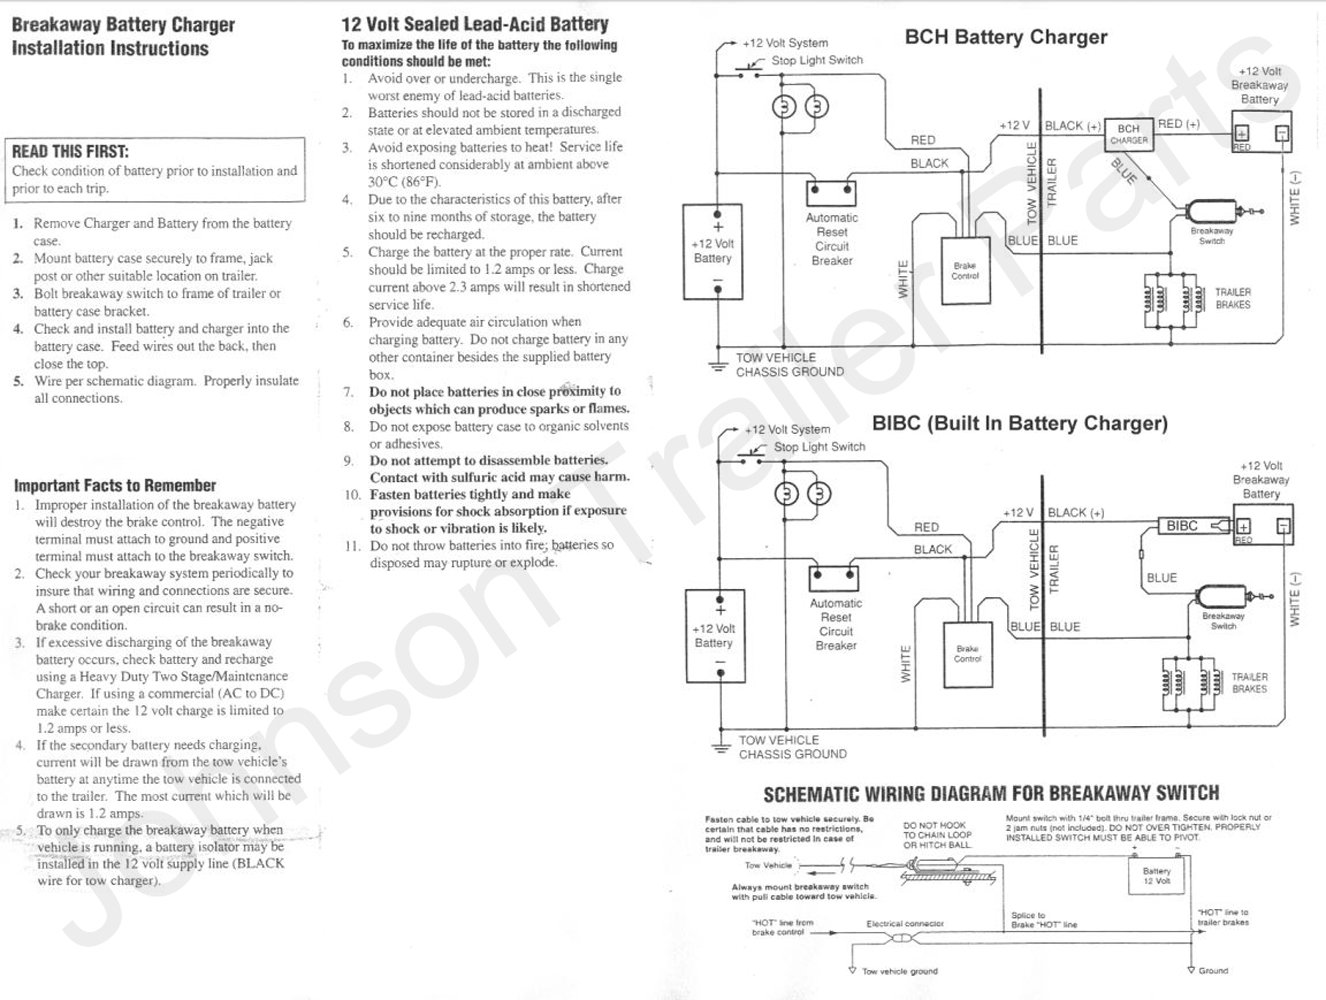 718PvzZr5ZL._SL1326_ amazon com trailer breakaway kit led readout breakaway switch tekonsha breakaway system wiring diagram at crackthecode.co